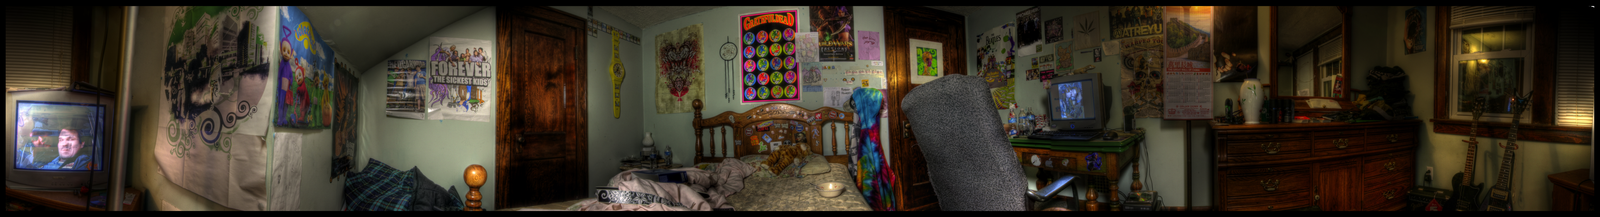 My Room by JohnKyo